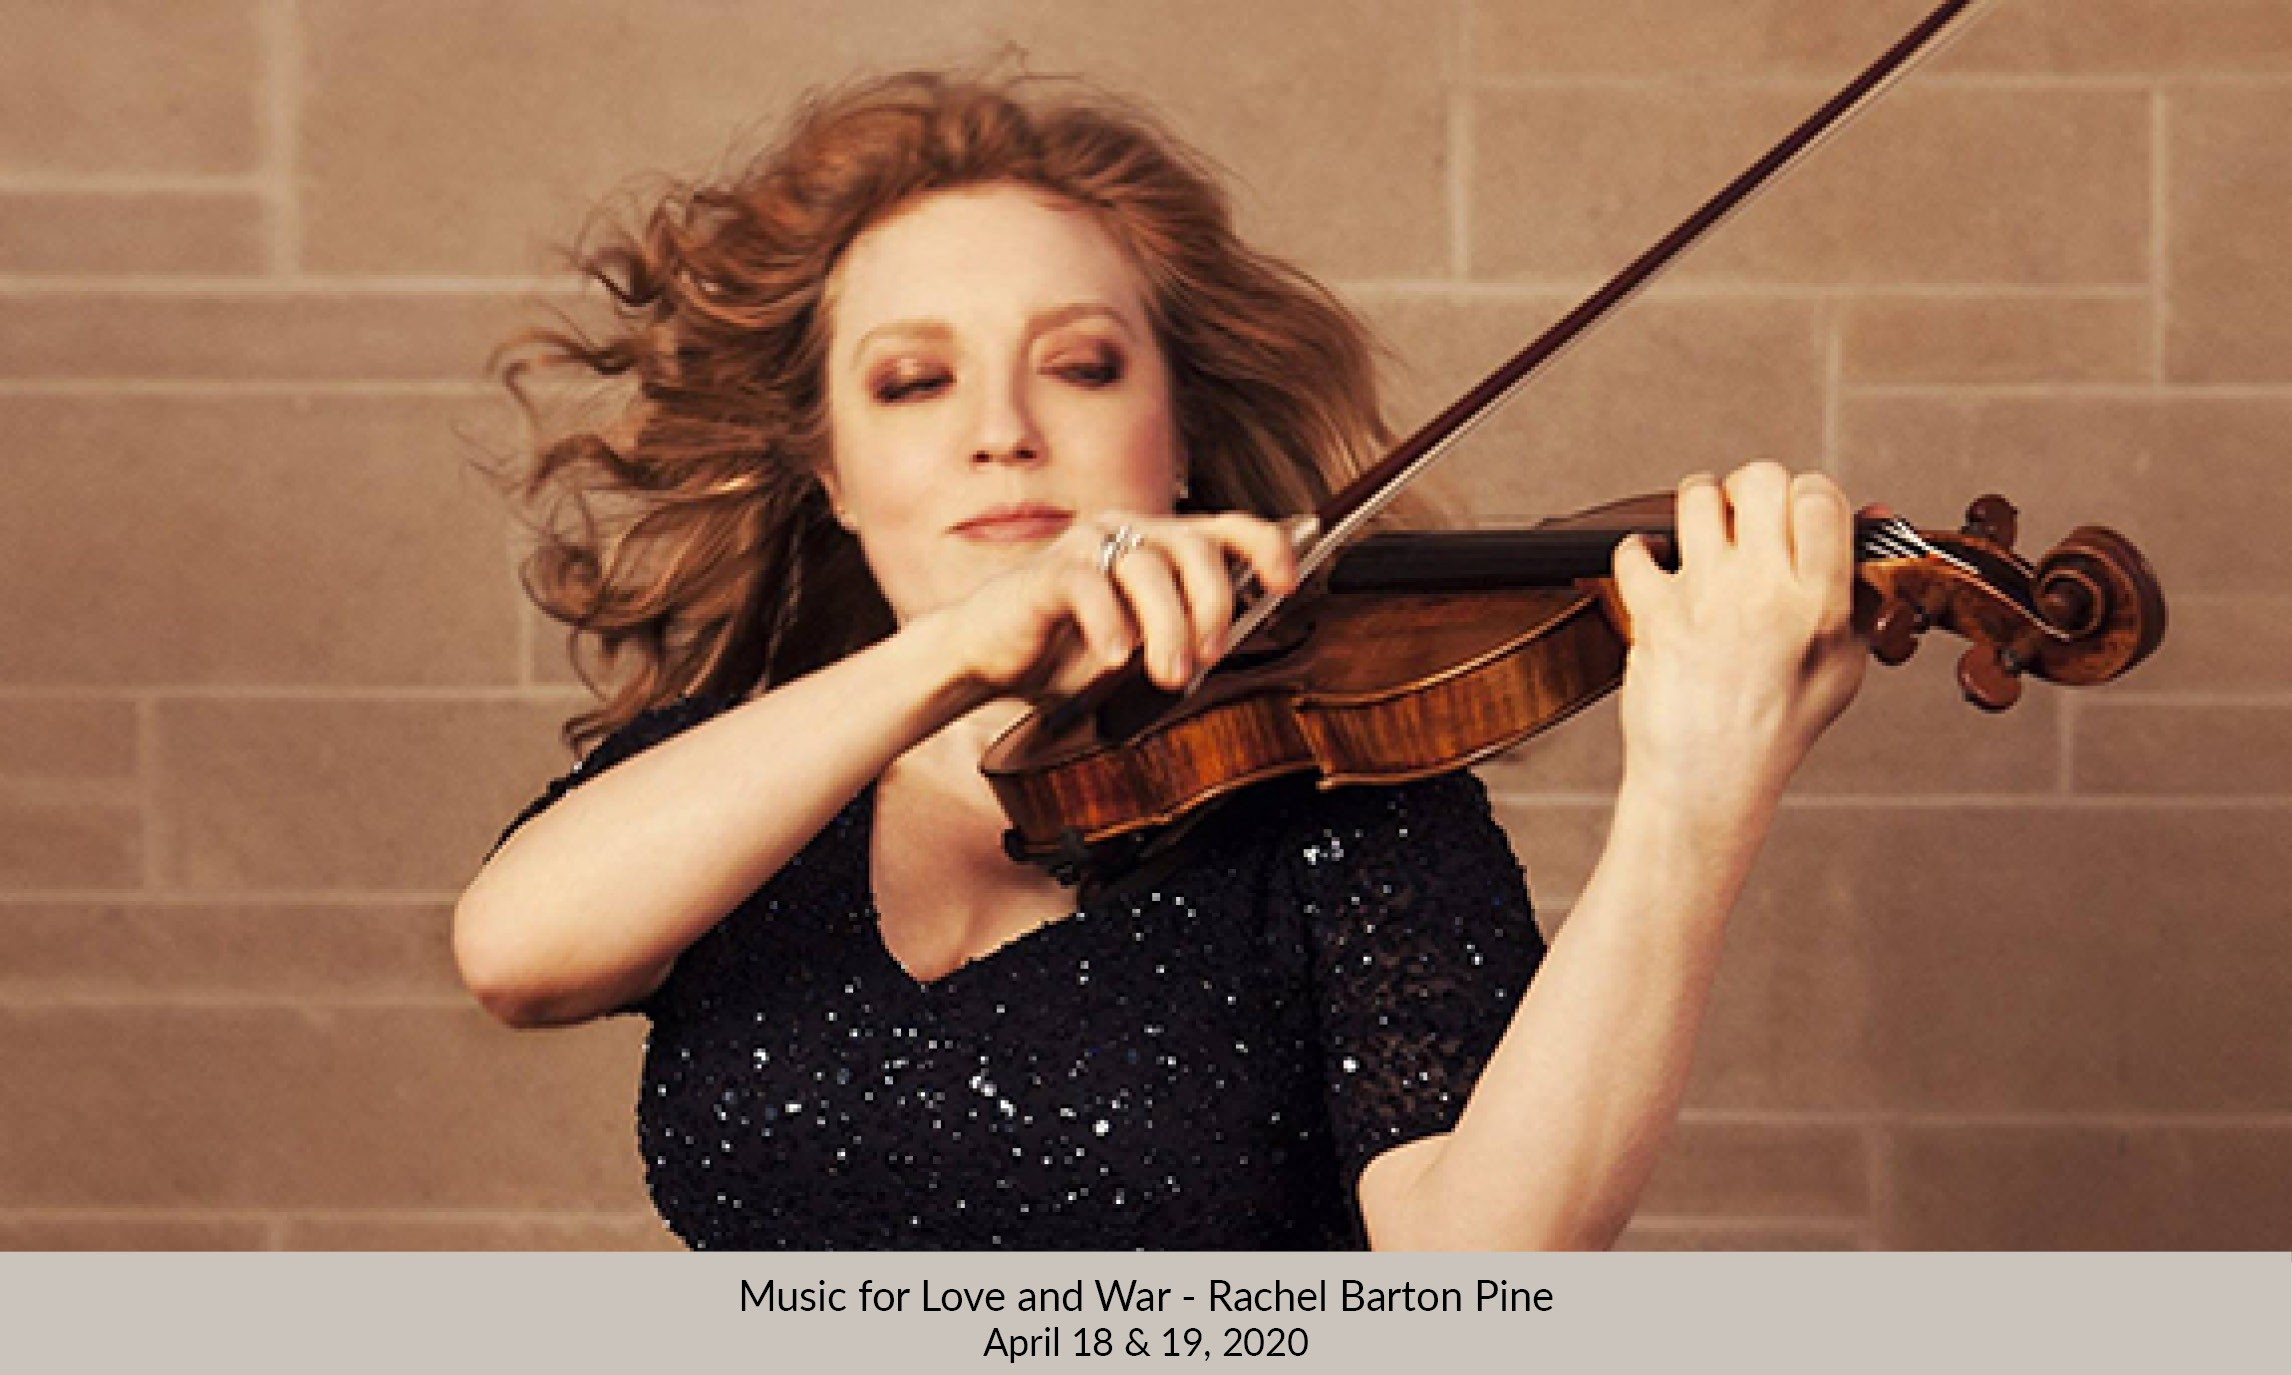 Seattle Events Calendar 2020 Seattle Baroque Orchestra: Music for Love and War – Rachel Barton